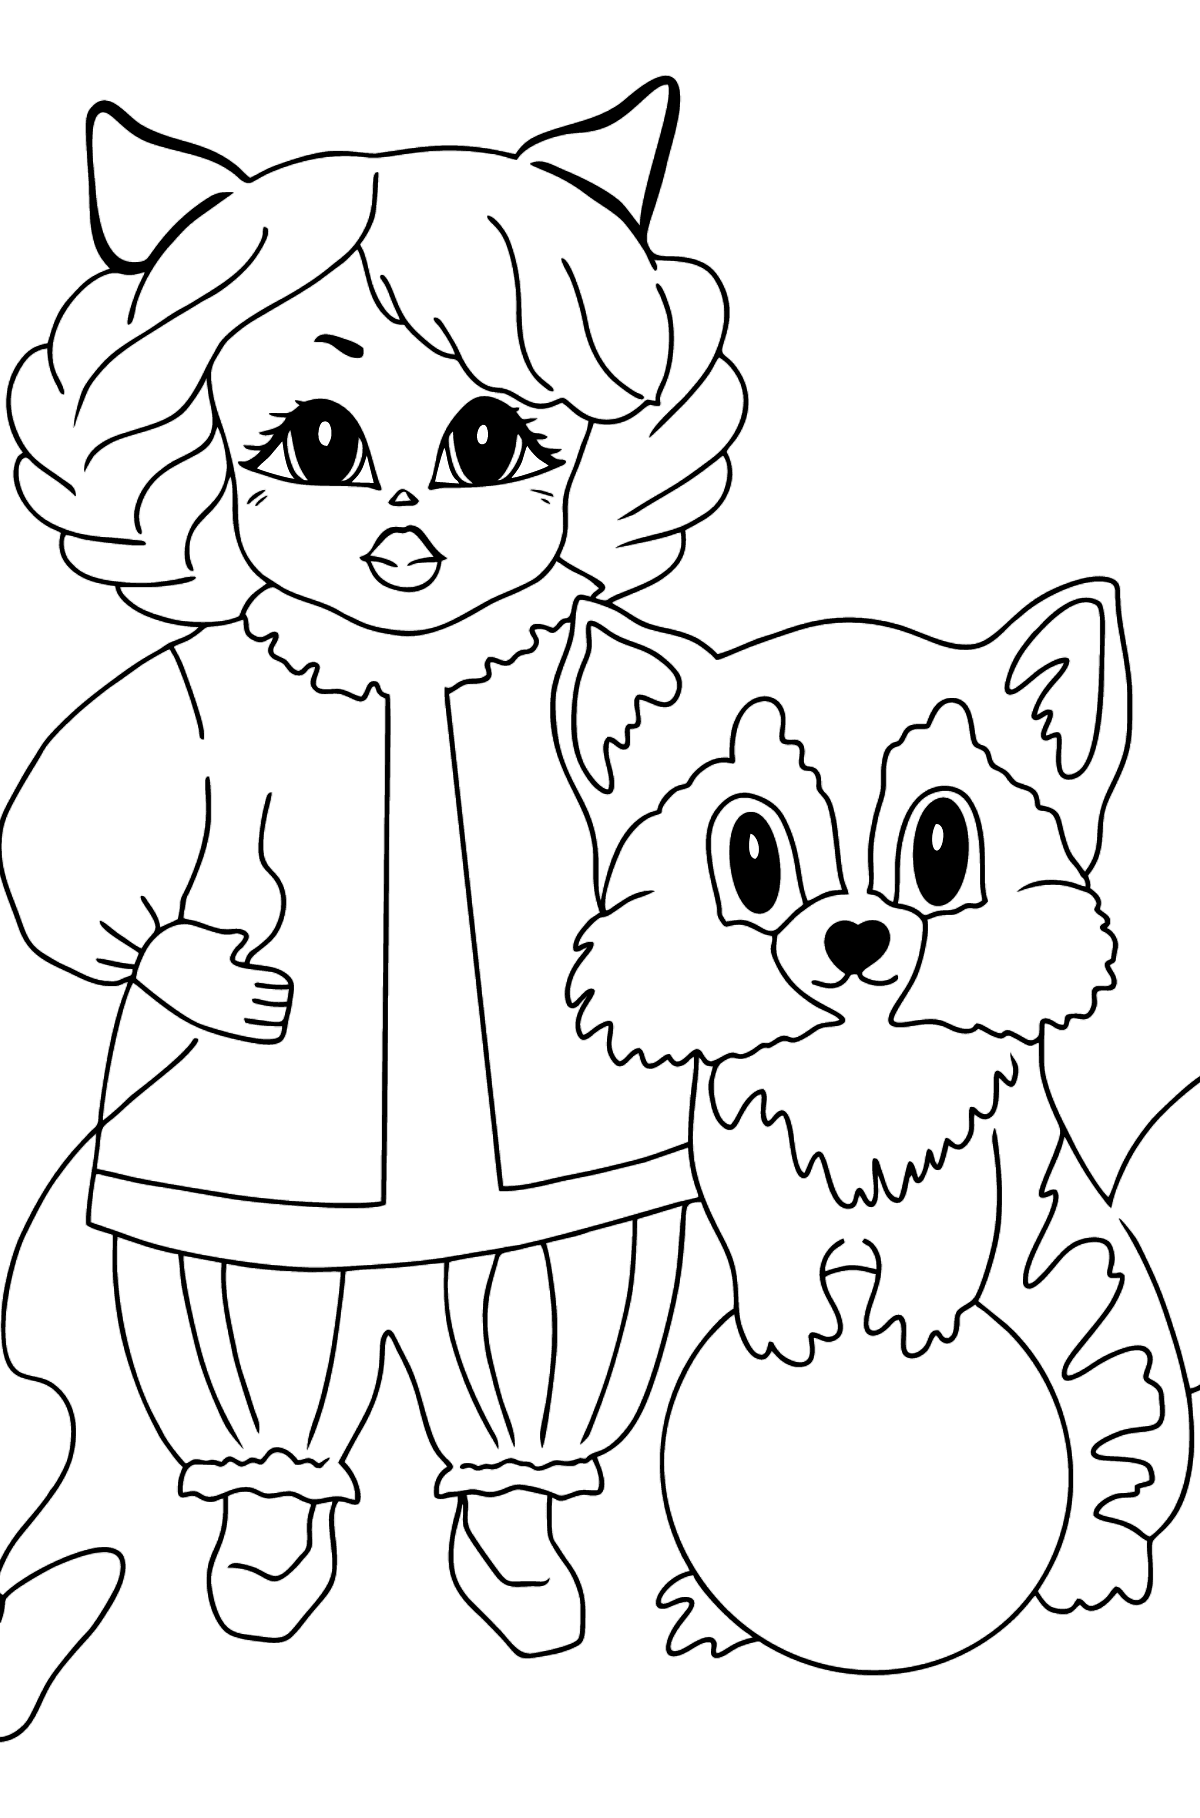 Coloring Picture - A Princess with a Cat and a Racoon - Coloring Pages for Kids